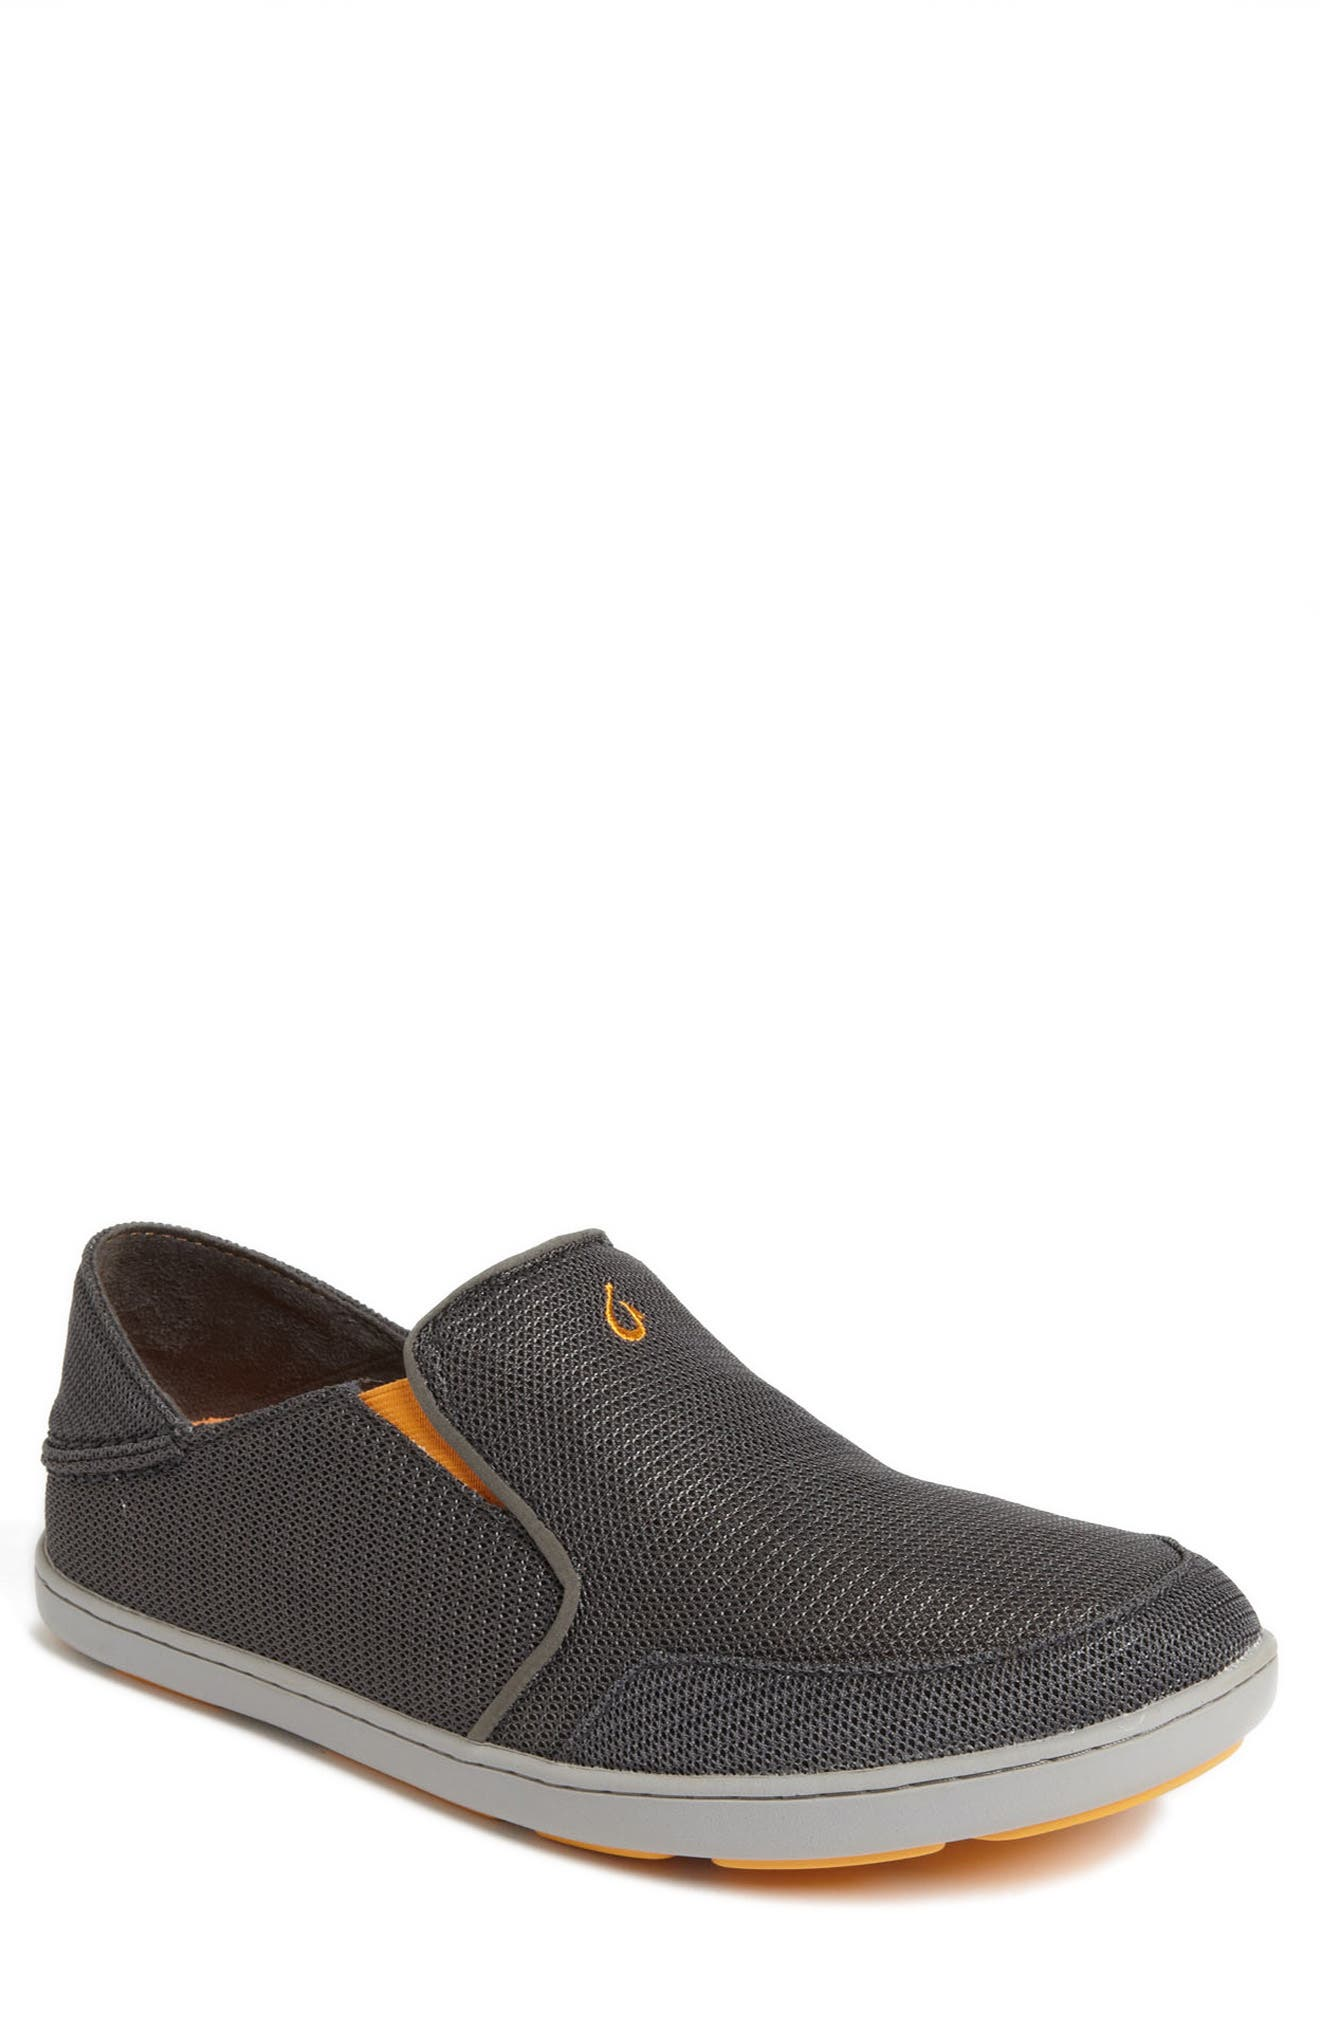 Nohea Mesh Slip-On,                         Main,                         color, DARK SHADOW/ DARK SHADOW